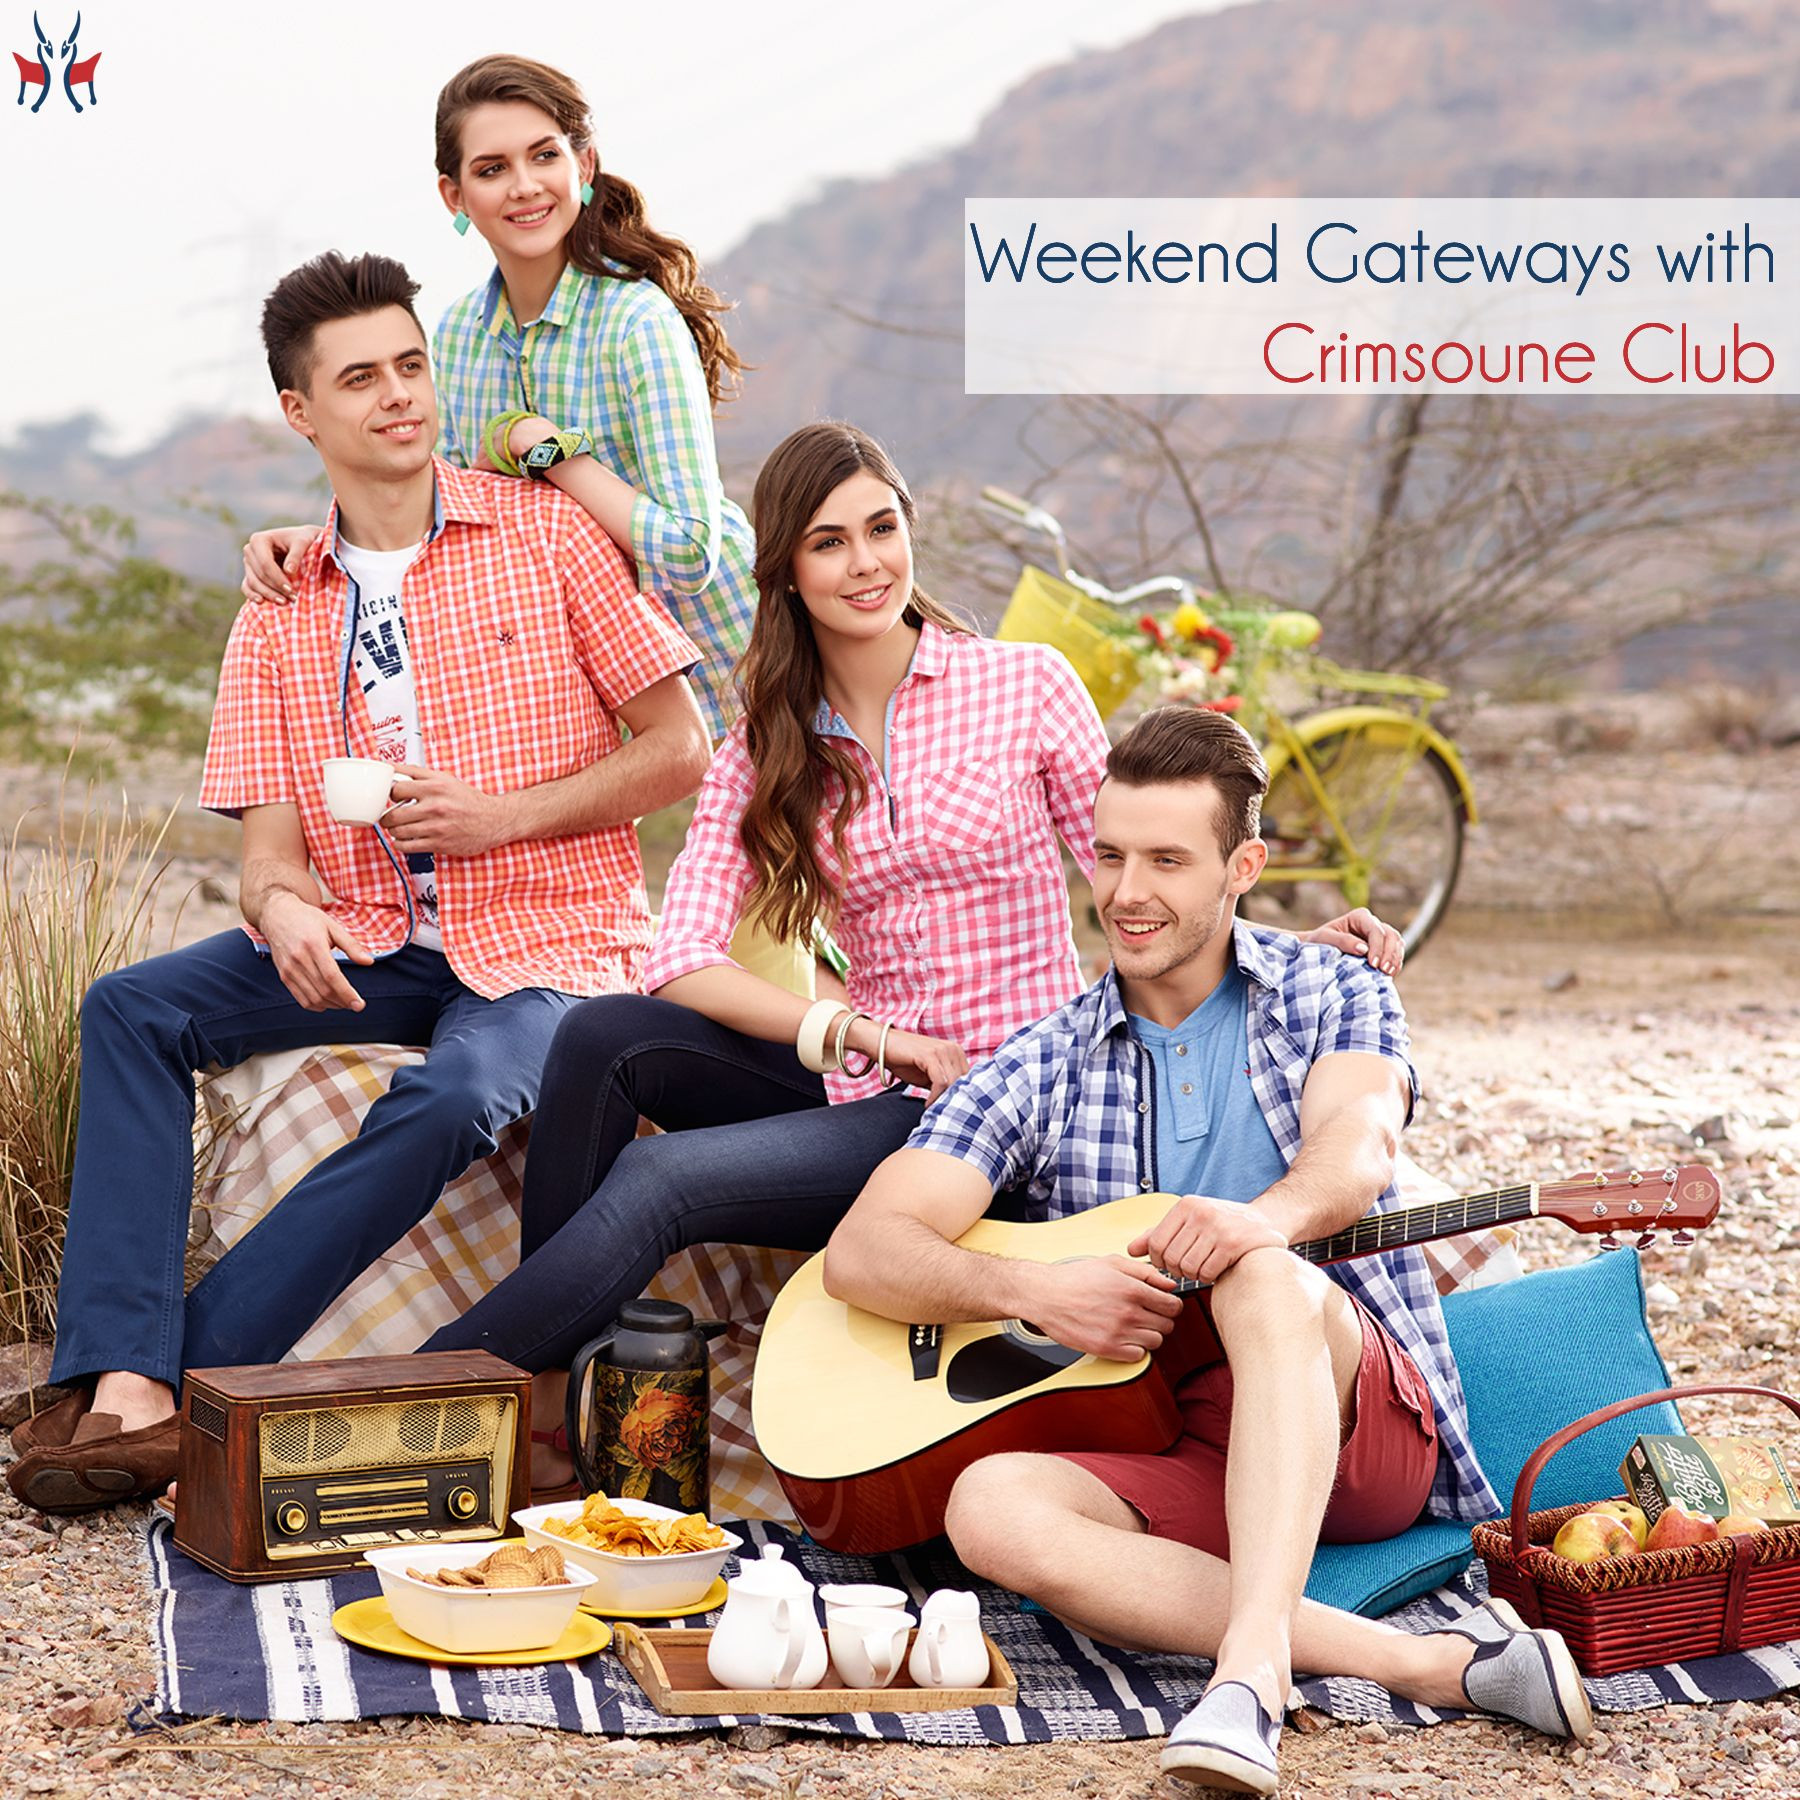 Enjoy Happy Weekend with Crimsoune Club | Casual wear for